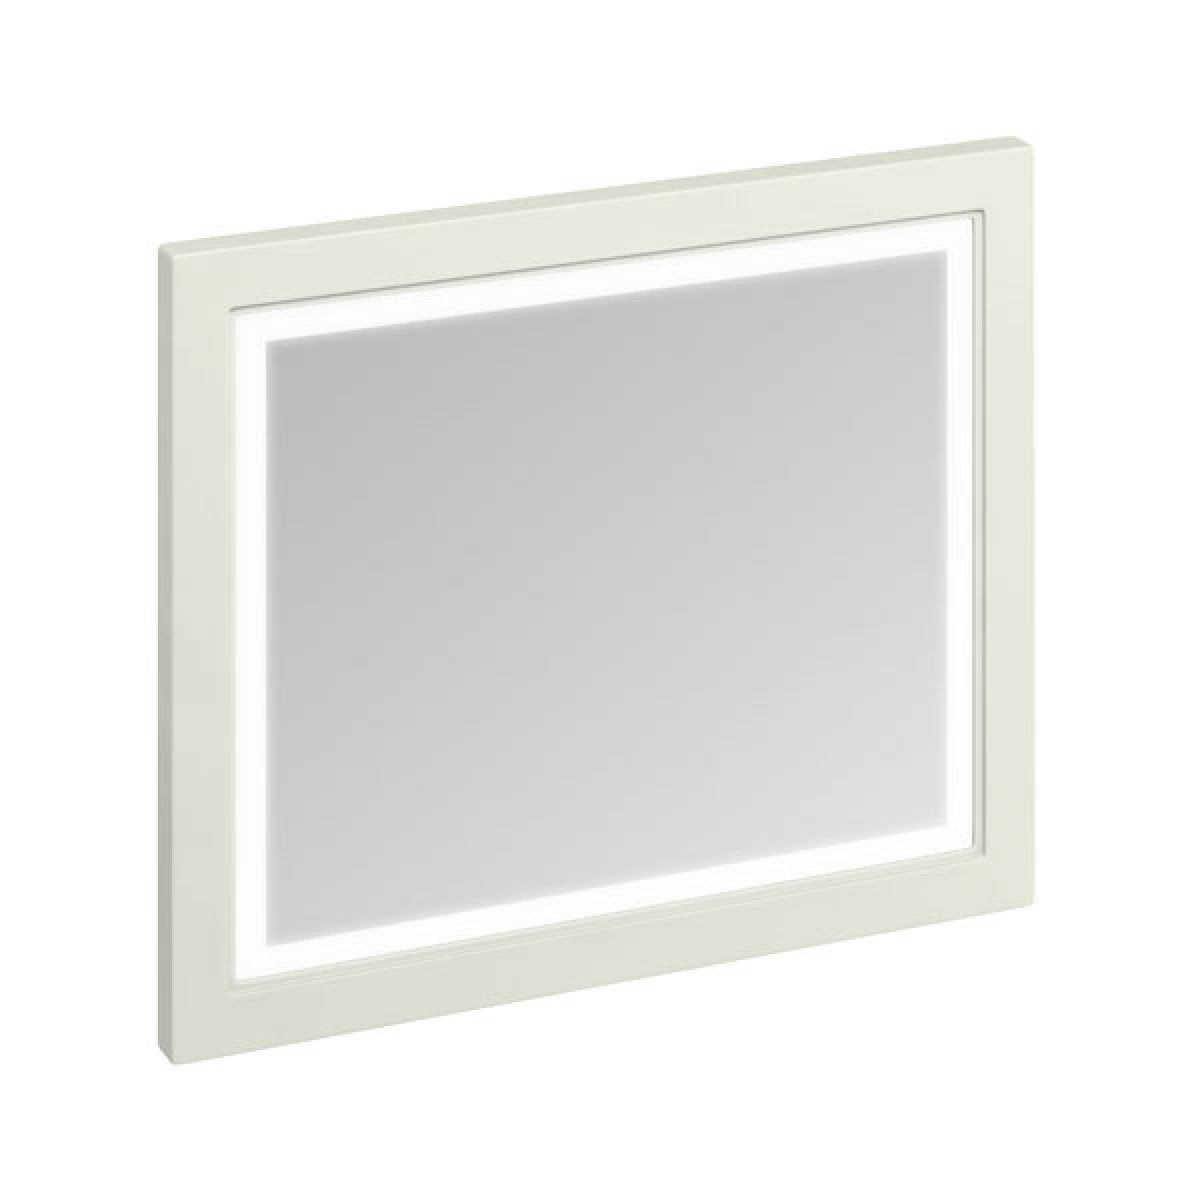 Burlington Sand LED Bathroom Mirror 900mm